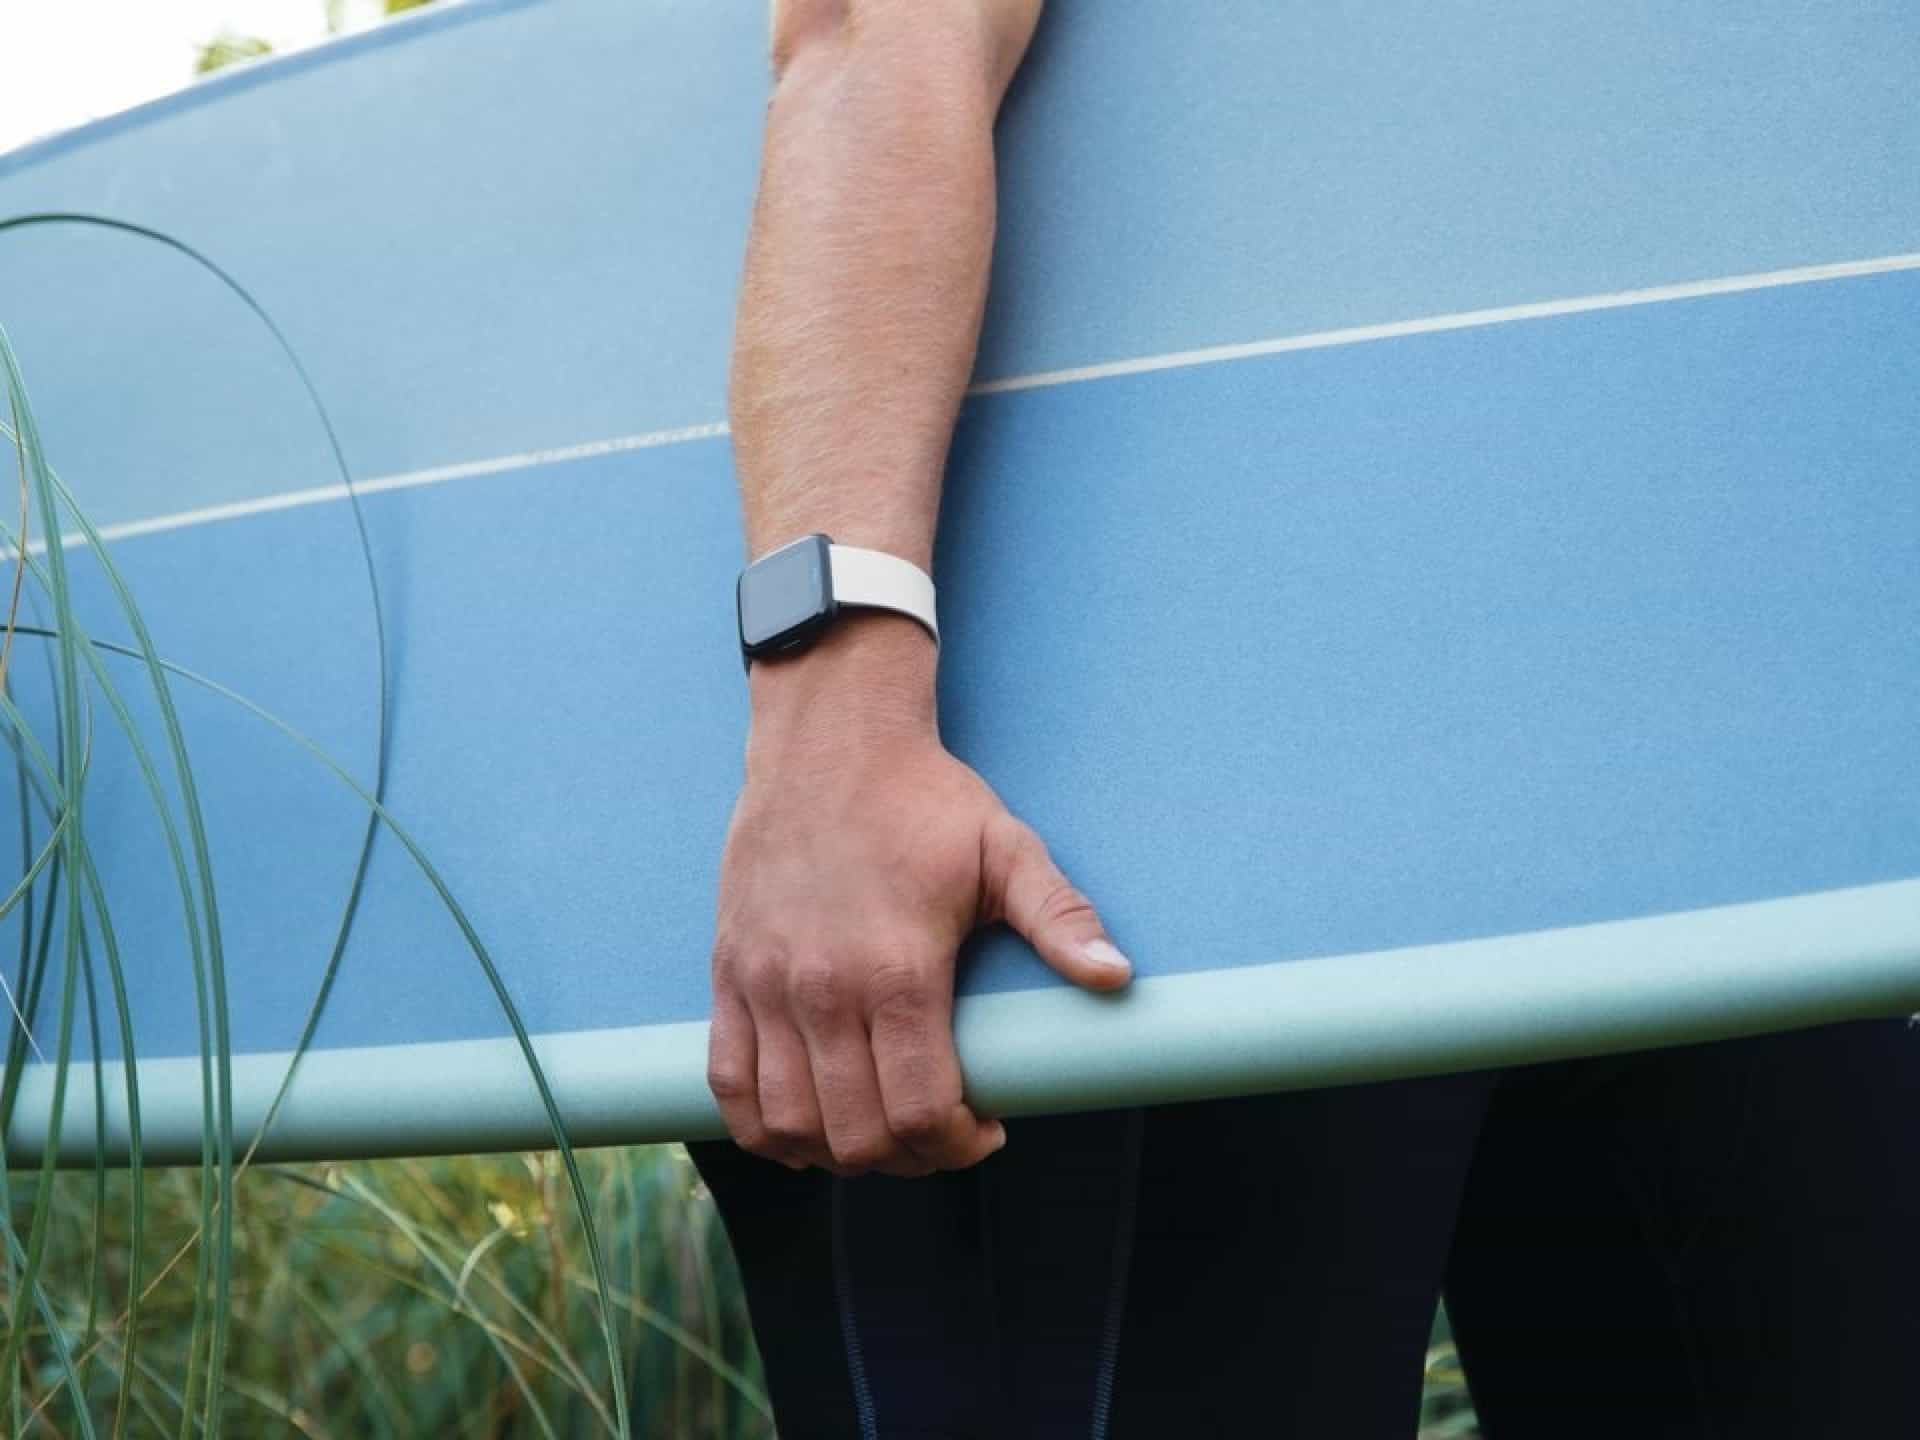 A Fitbit lançou a alternativa ao Apple Watch de que estava à espera